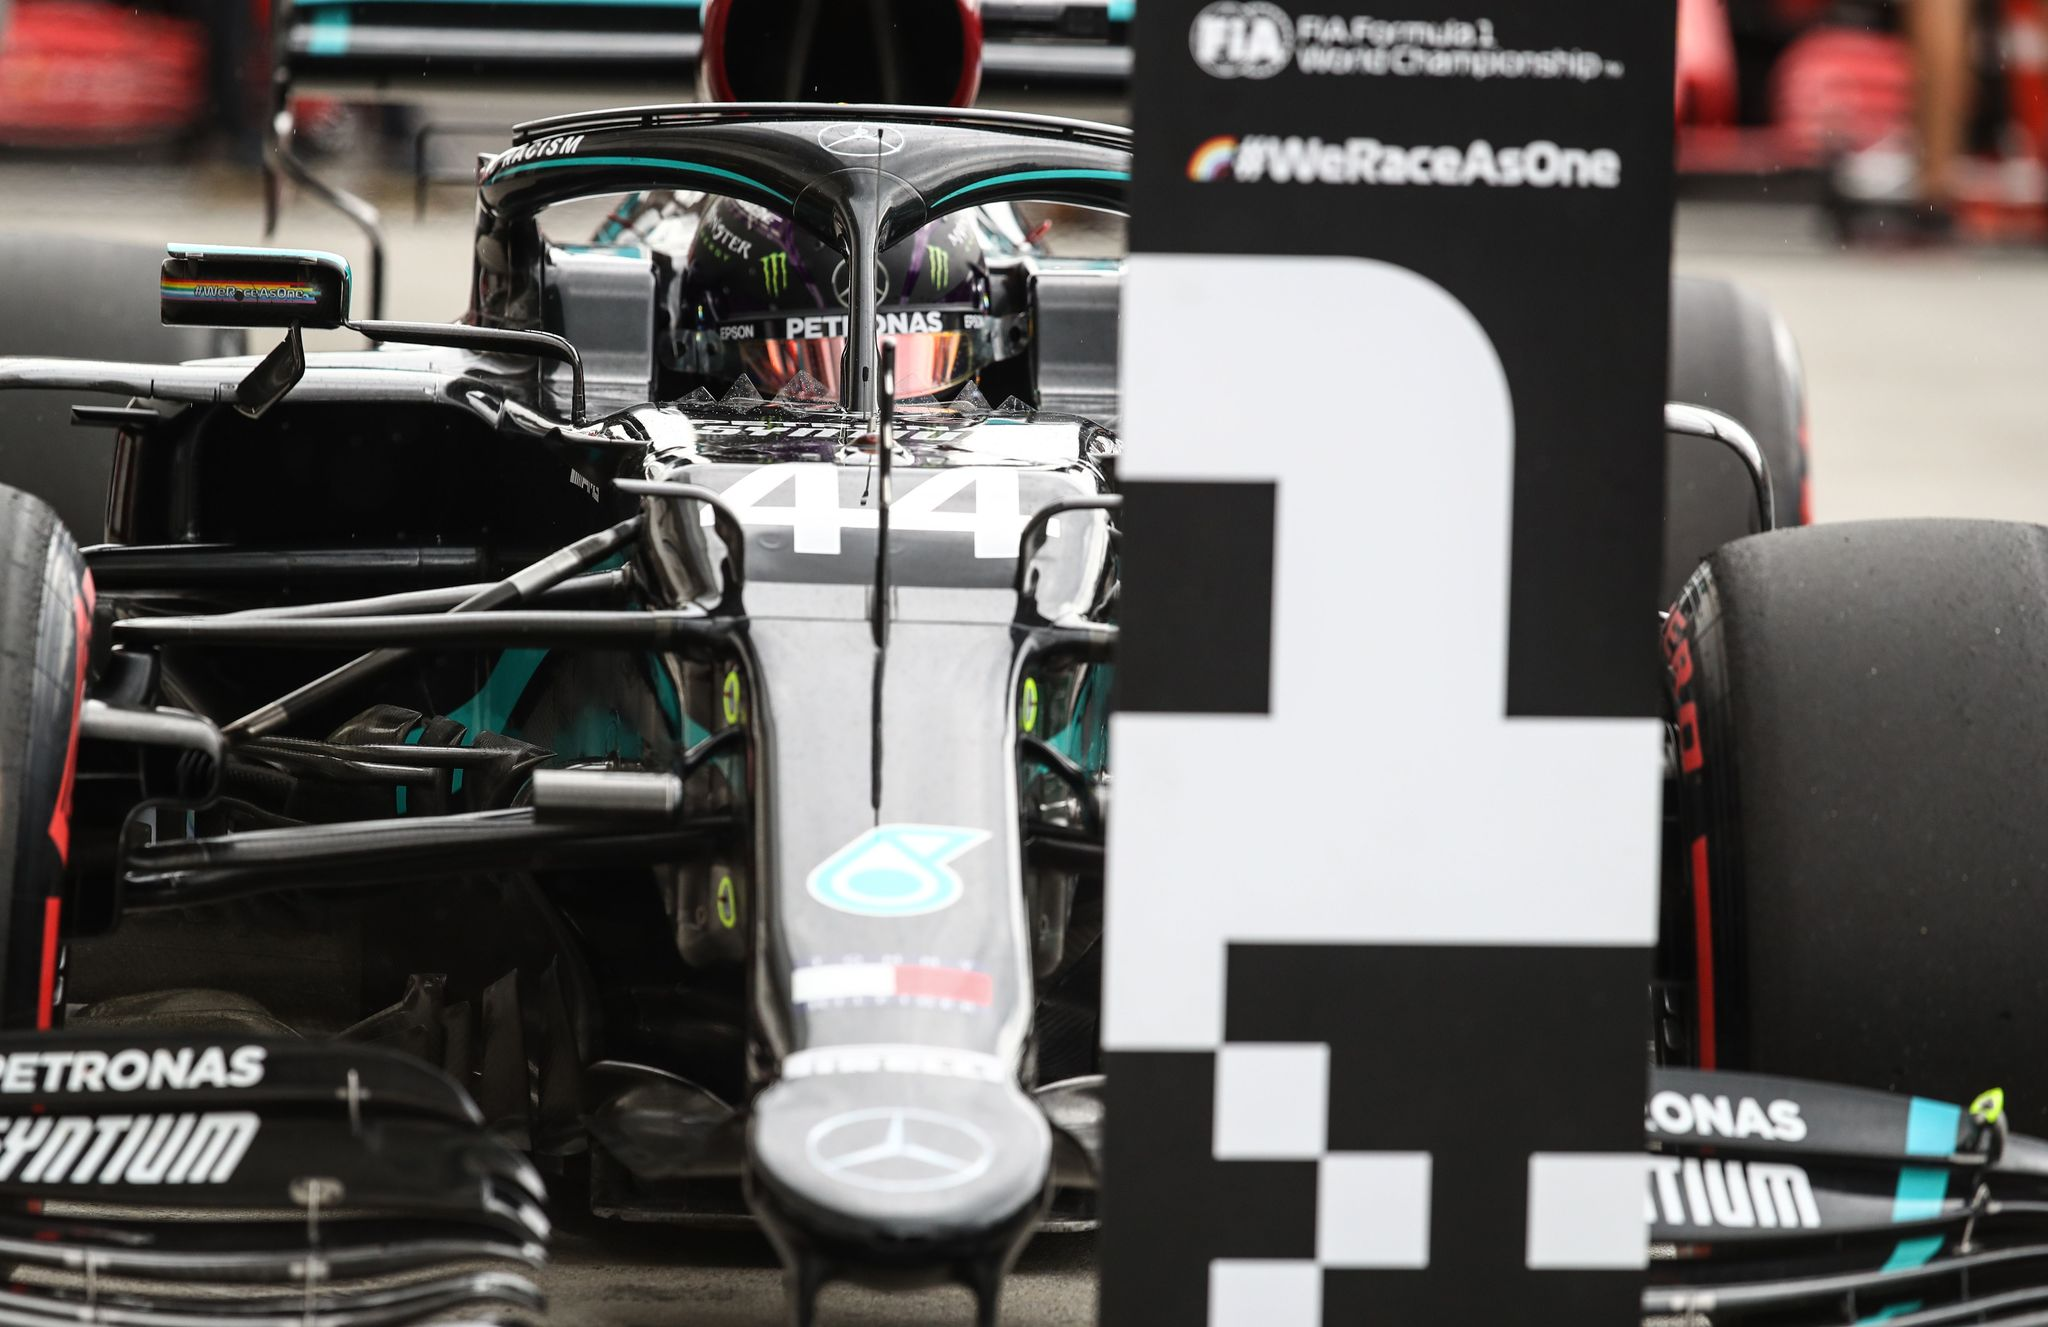 lt;HIT gt;Mercedes lt;/HIT gt;' British driver Lewis lt;HIT gt;Hamilton lt;/HIT gt; stands in the pit after the qualifying session for the Formula One Hungarian Grand Prix at the Hungaroring circuit in Mogyorod near Budapest, Hungary, on July 18, 2020. (Photo by Mark Thompson / POOL / AFP)